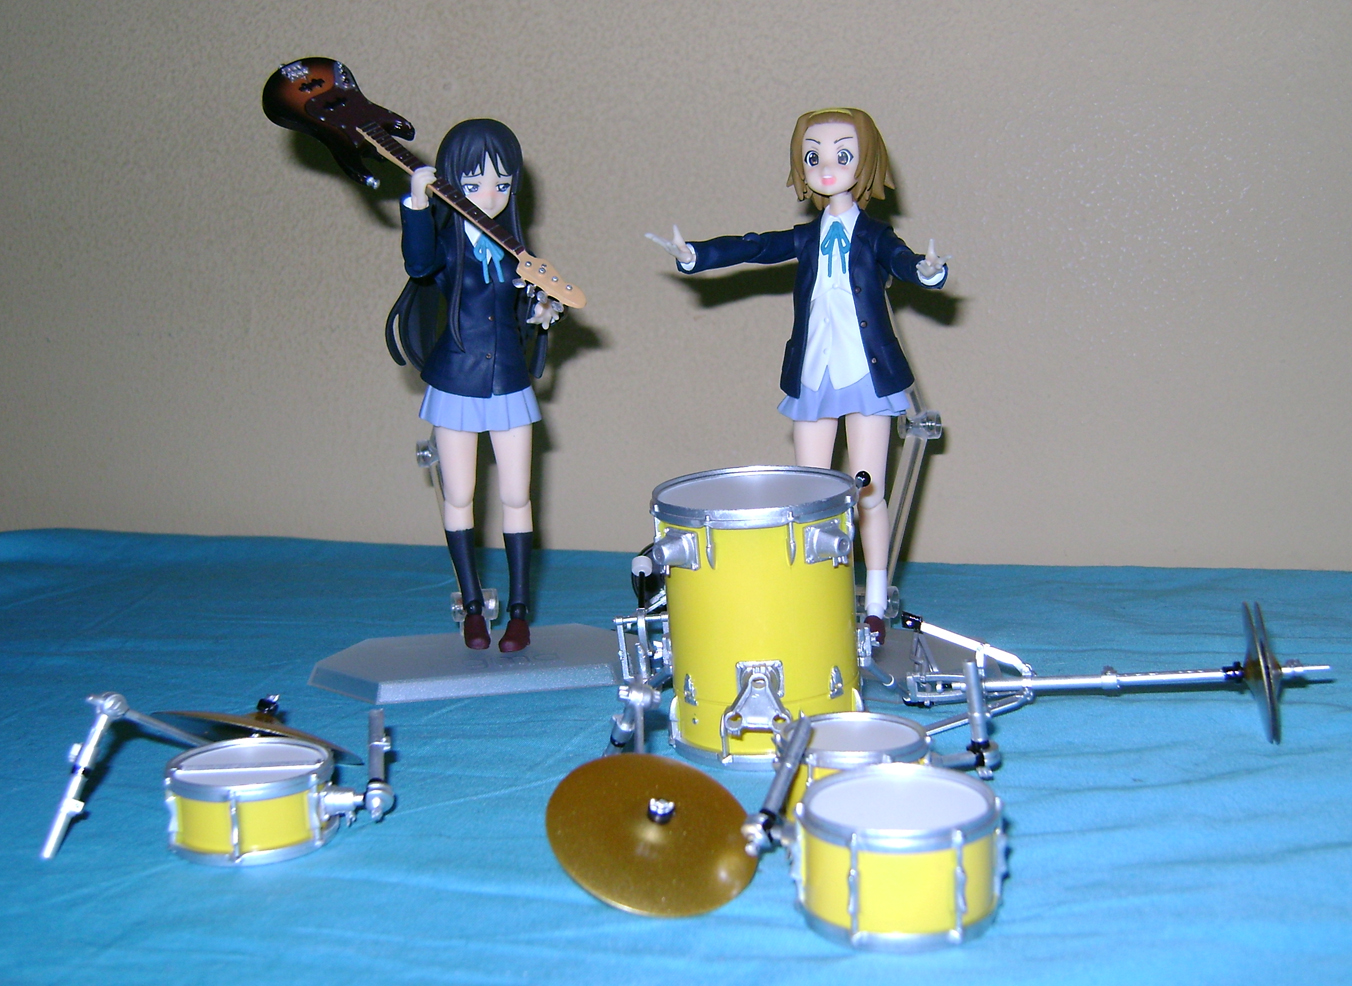 Keion F 11 K ON: Mio And Ritsu, Figma Action Figures!